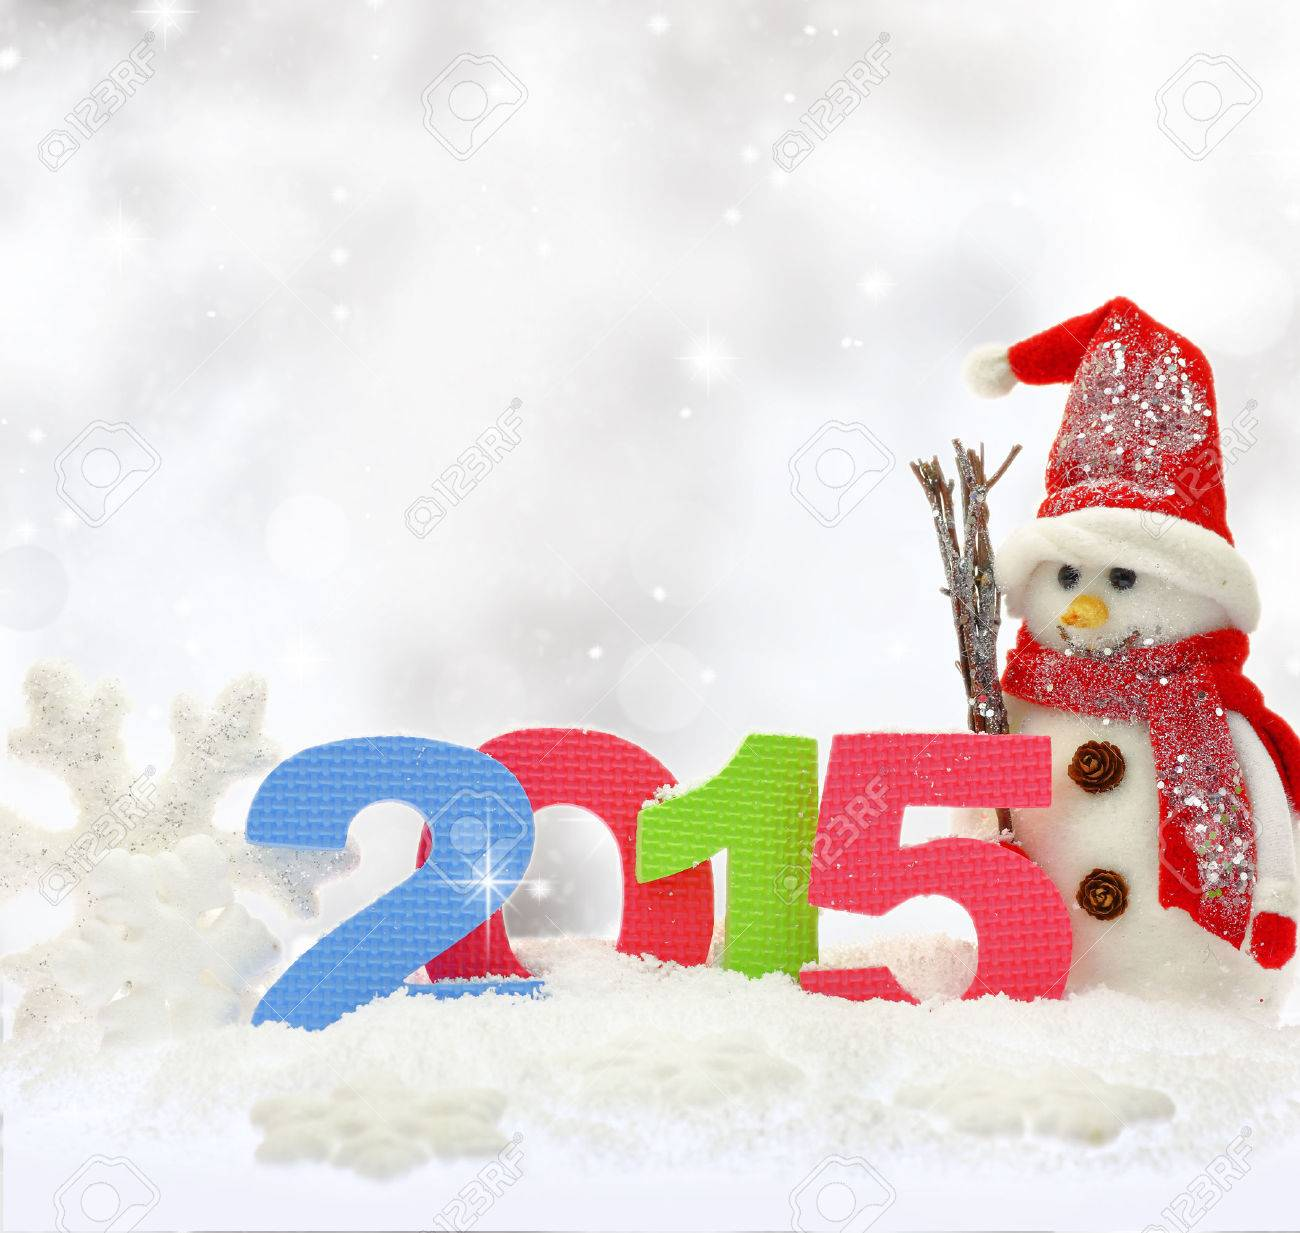 Snowman and new year 2015 on snow Stock Photo - 33266940